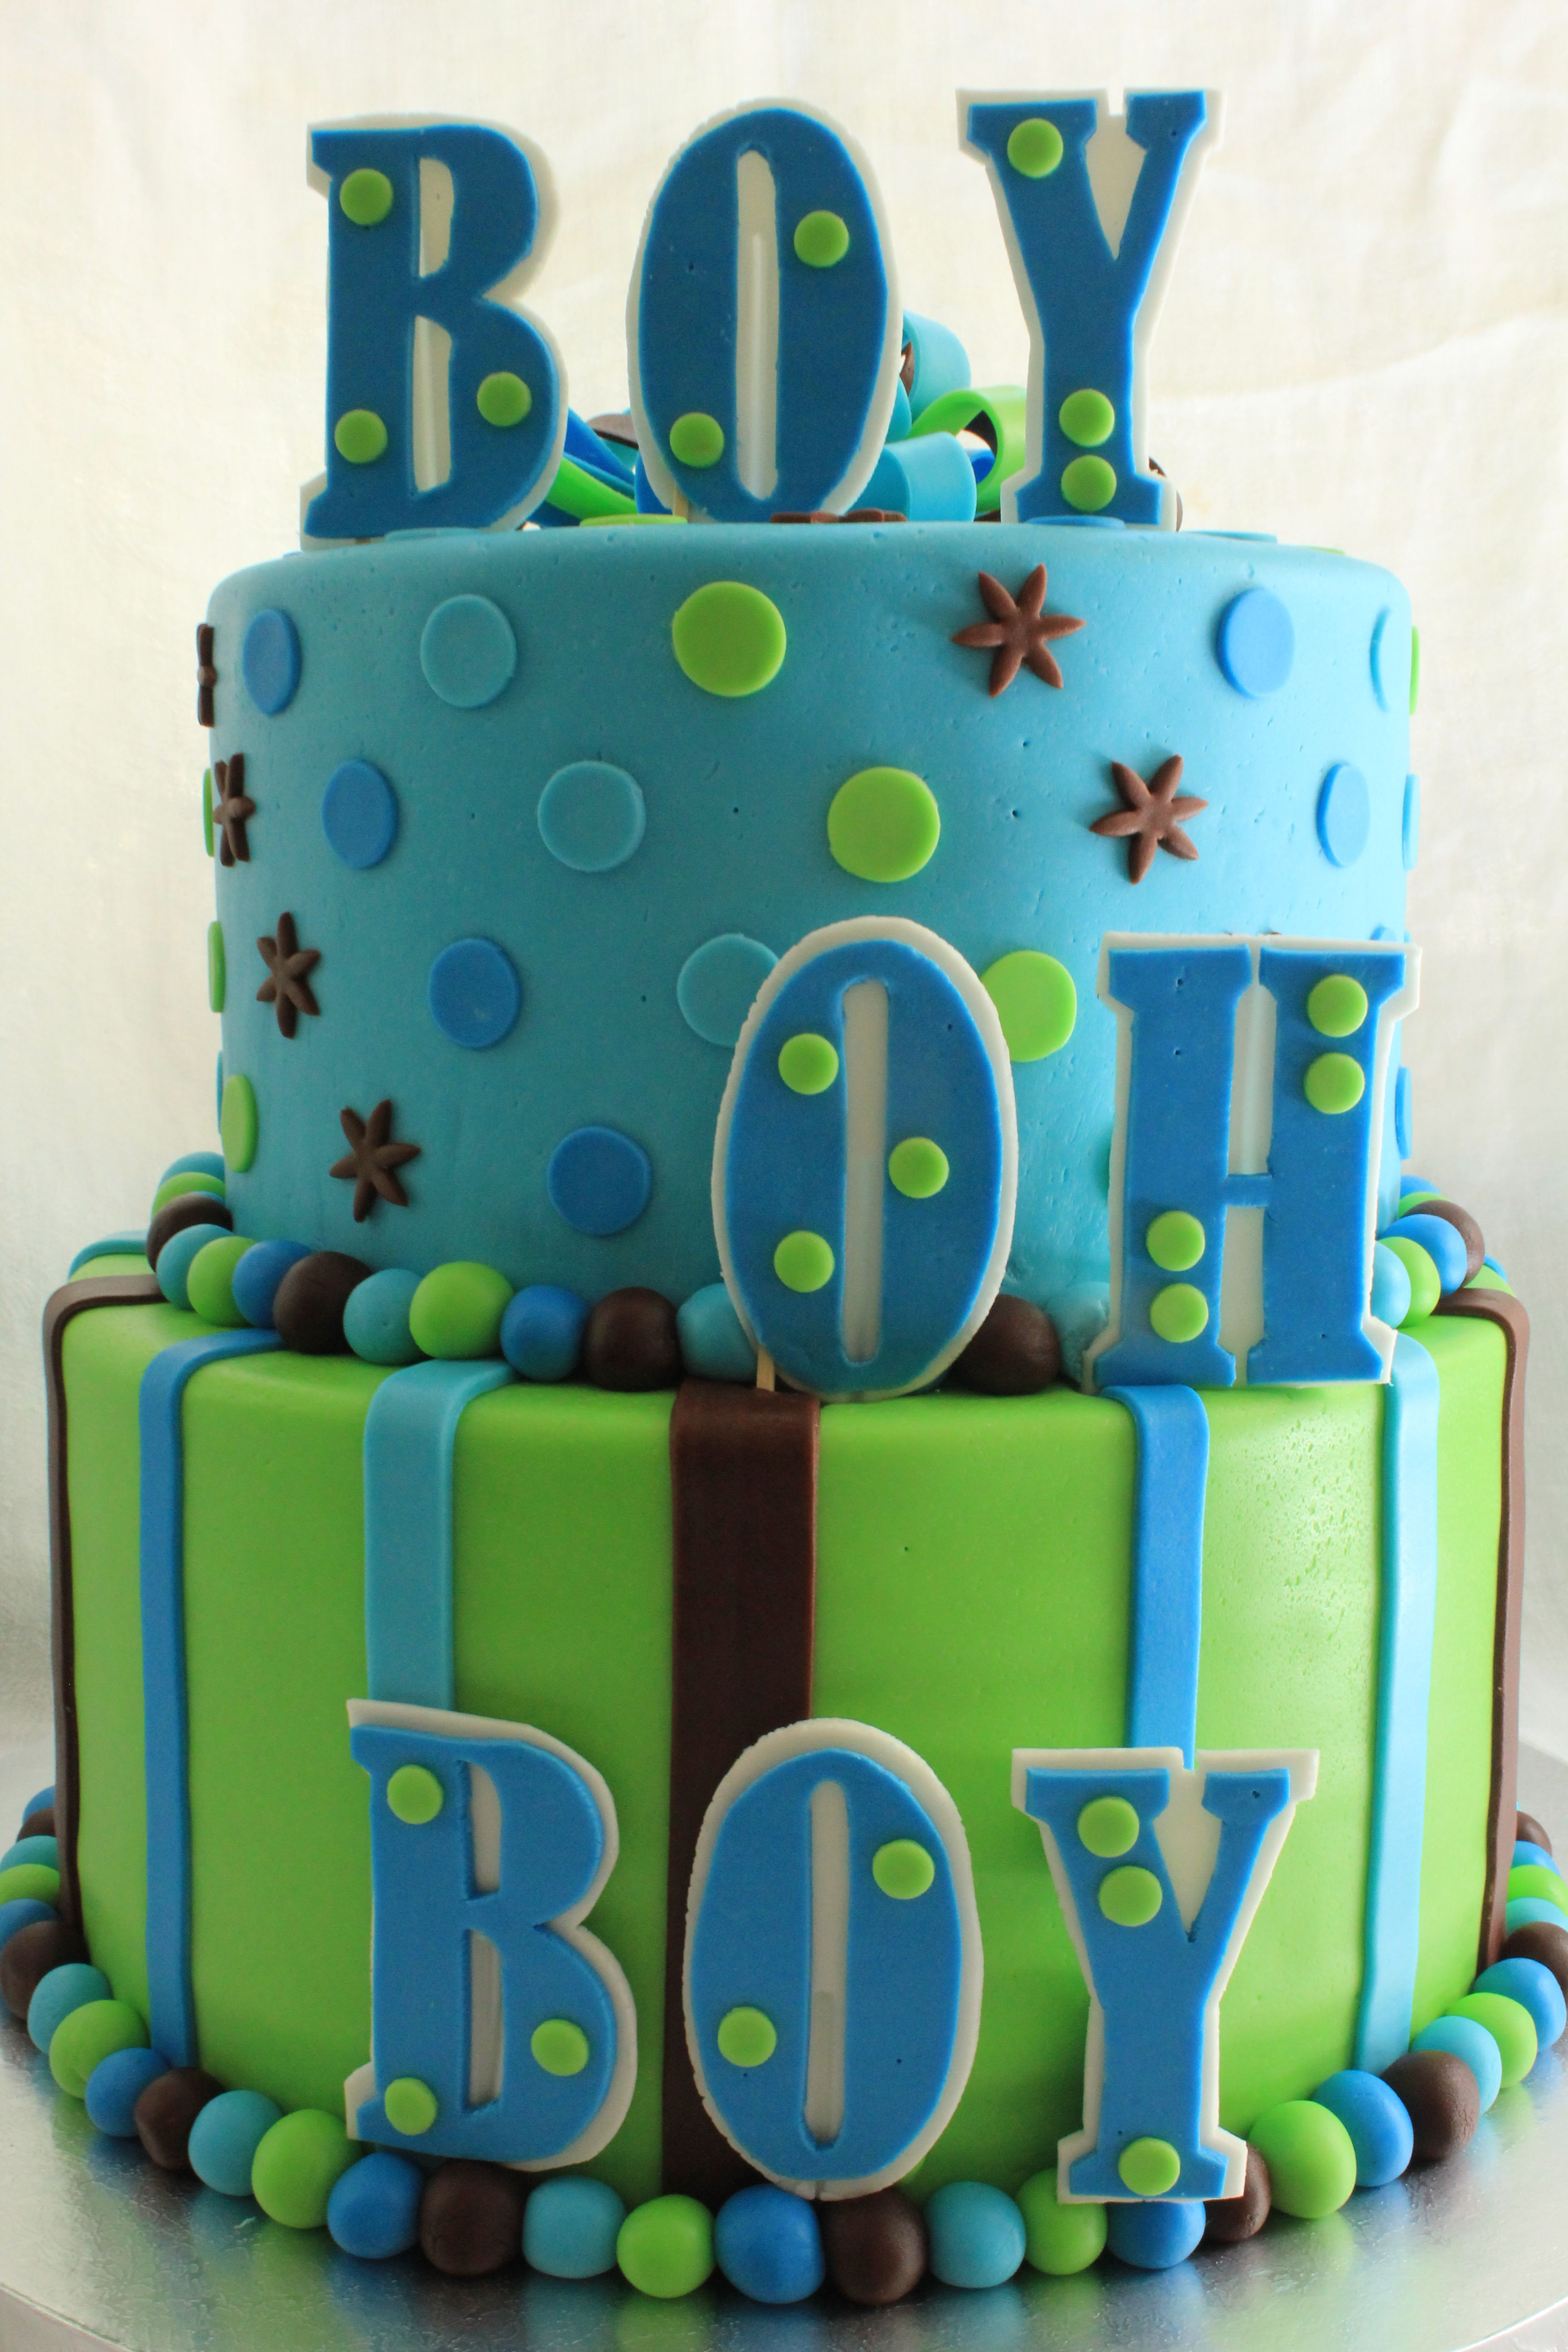 Amazing Polka Dots And Stripes. Green, Blue, And Brown. BOY OH BOY Baby Shower Cakeu2026